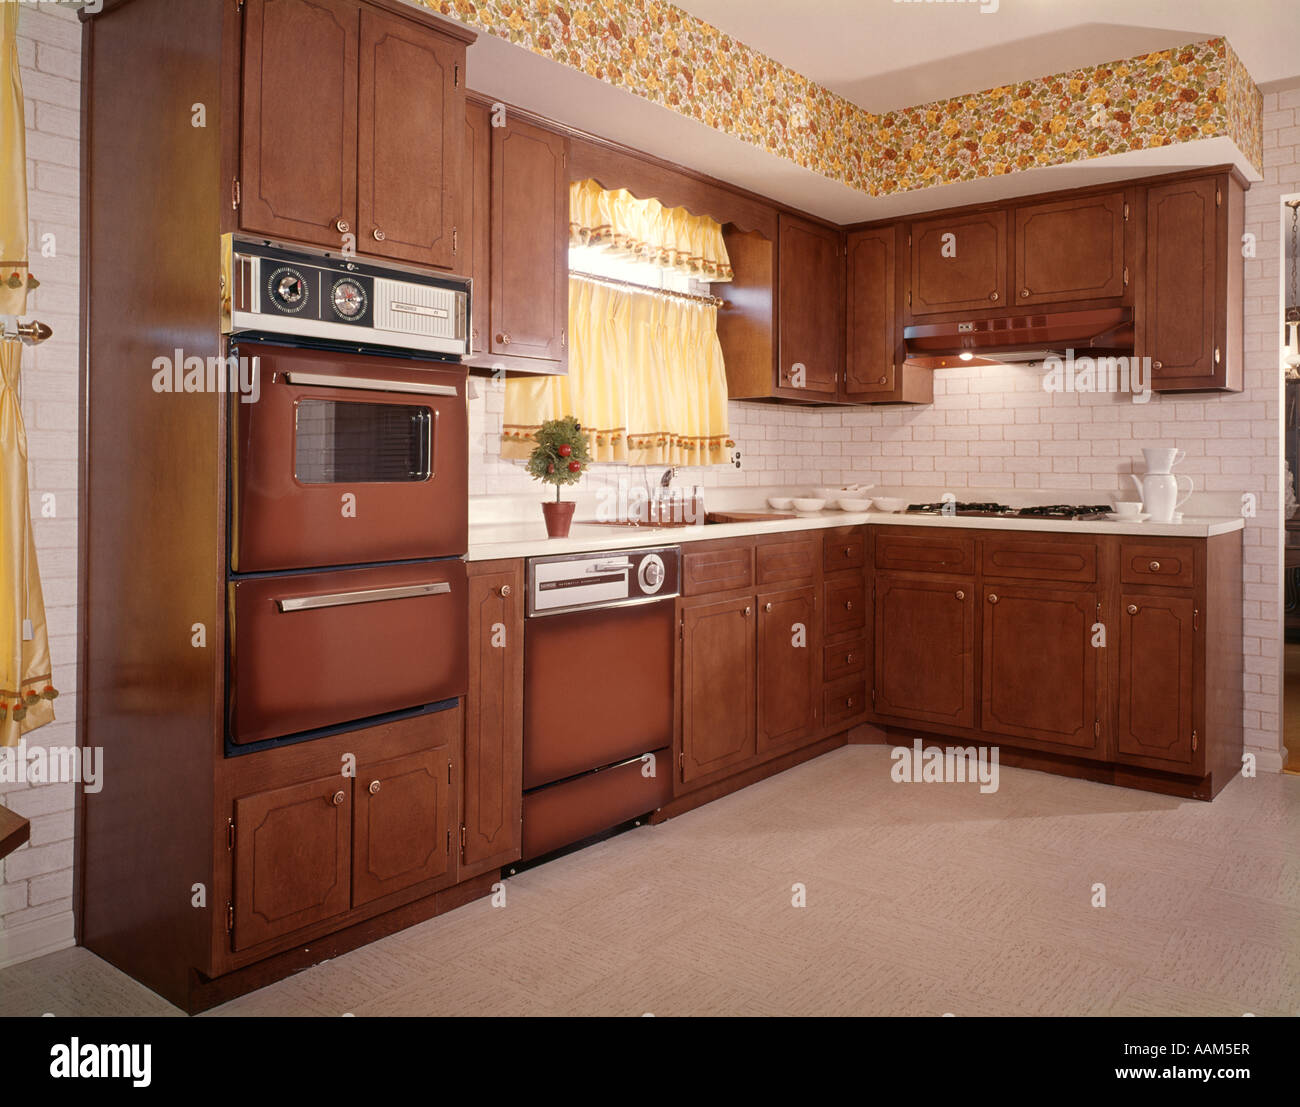 1970s kitchen brown cabinets yellow curtains stock image - 1970s Kitchen